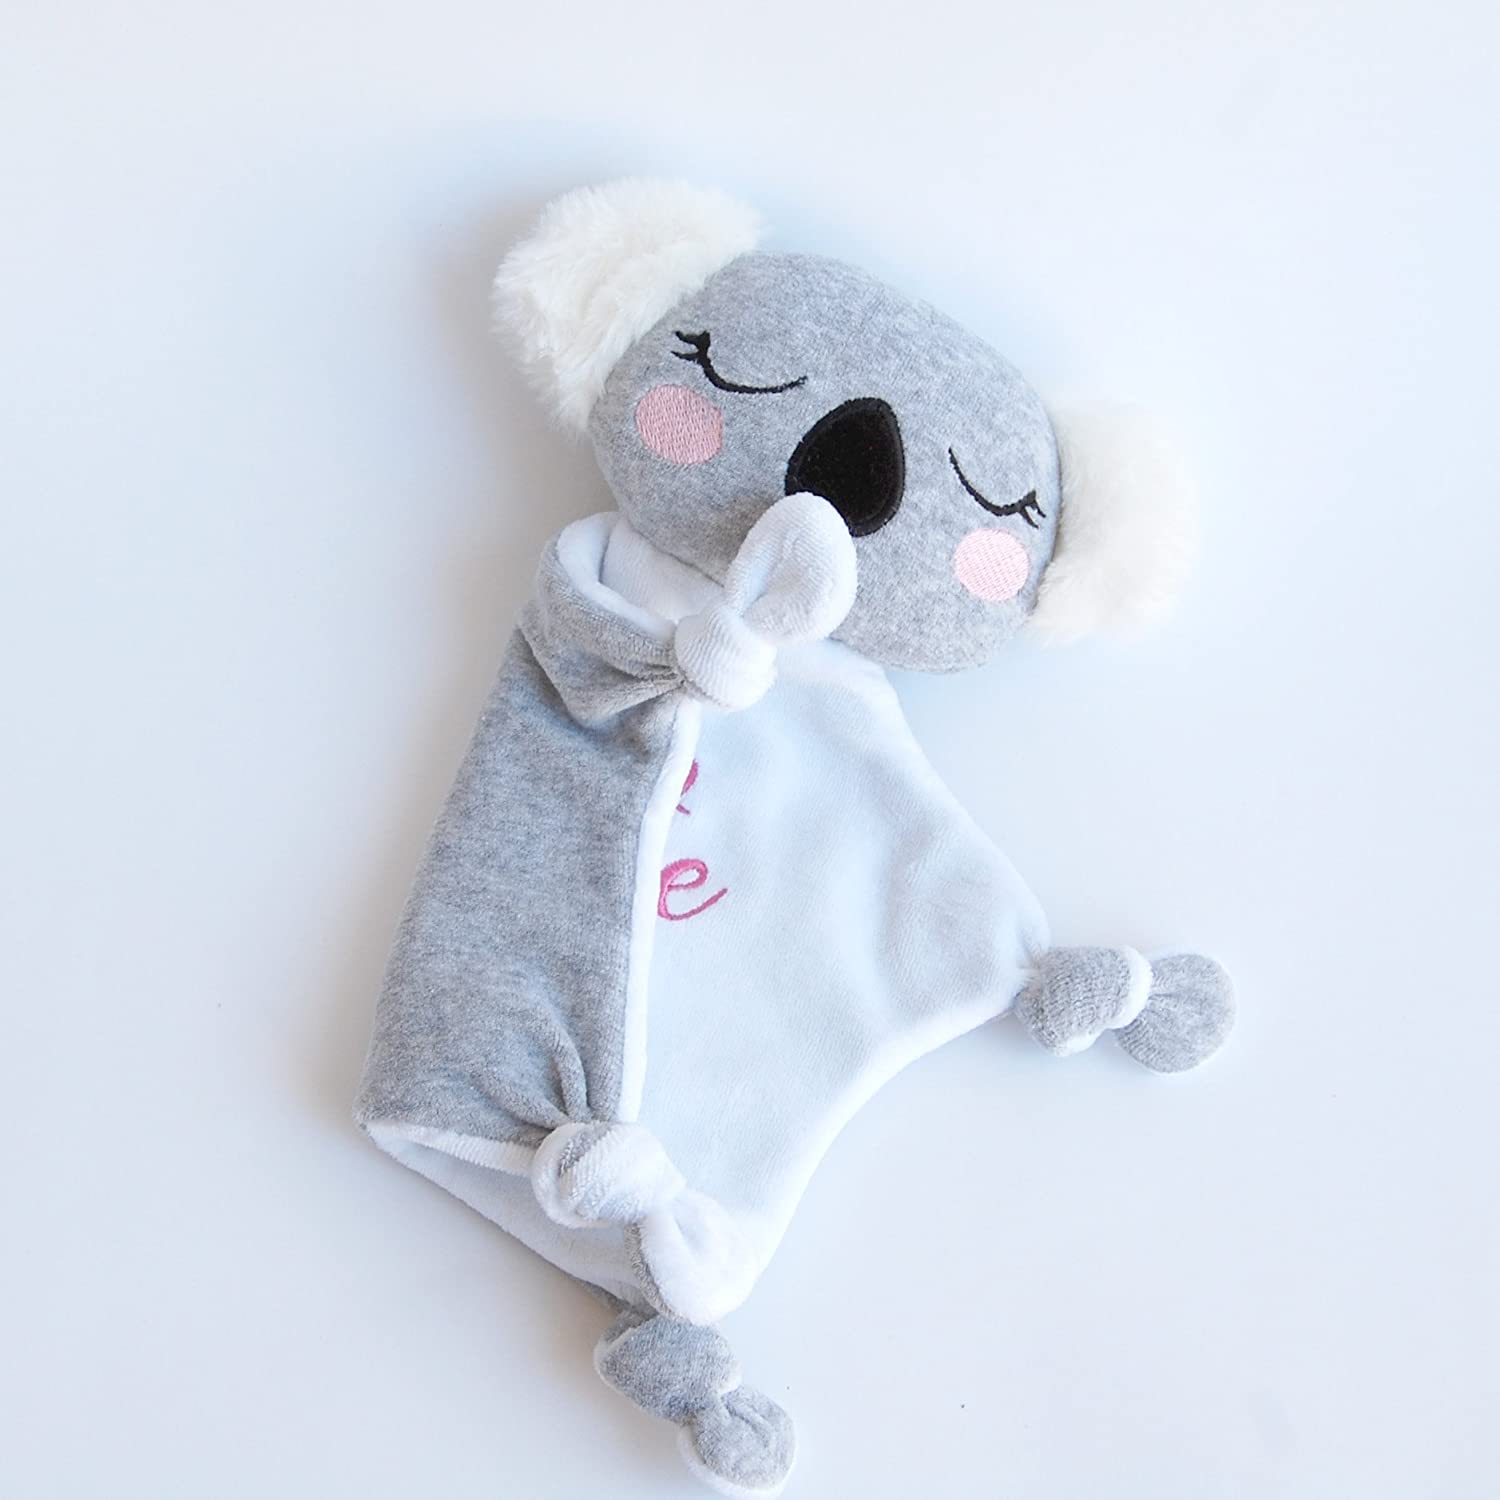 Newborn Baby Toy Comfort Blanket Koala Personalized via Custom Embroidery